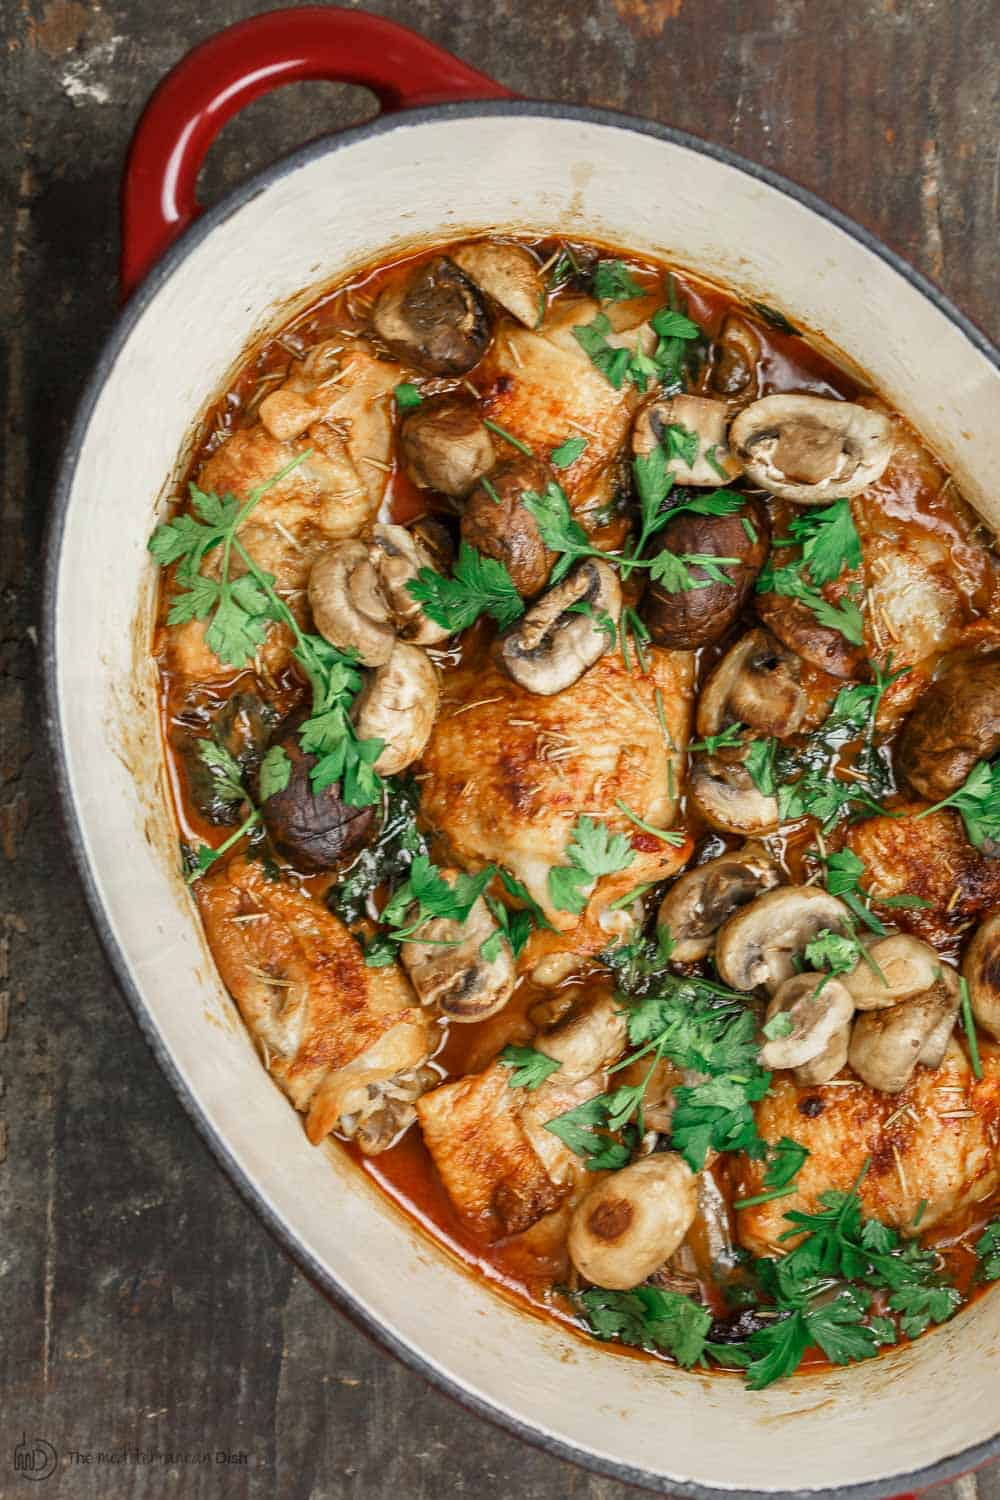 Wine-Braised Chicken Thighs, prepared Mediterranean-style with a rosemary spice rub, shallots, and mushrooms